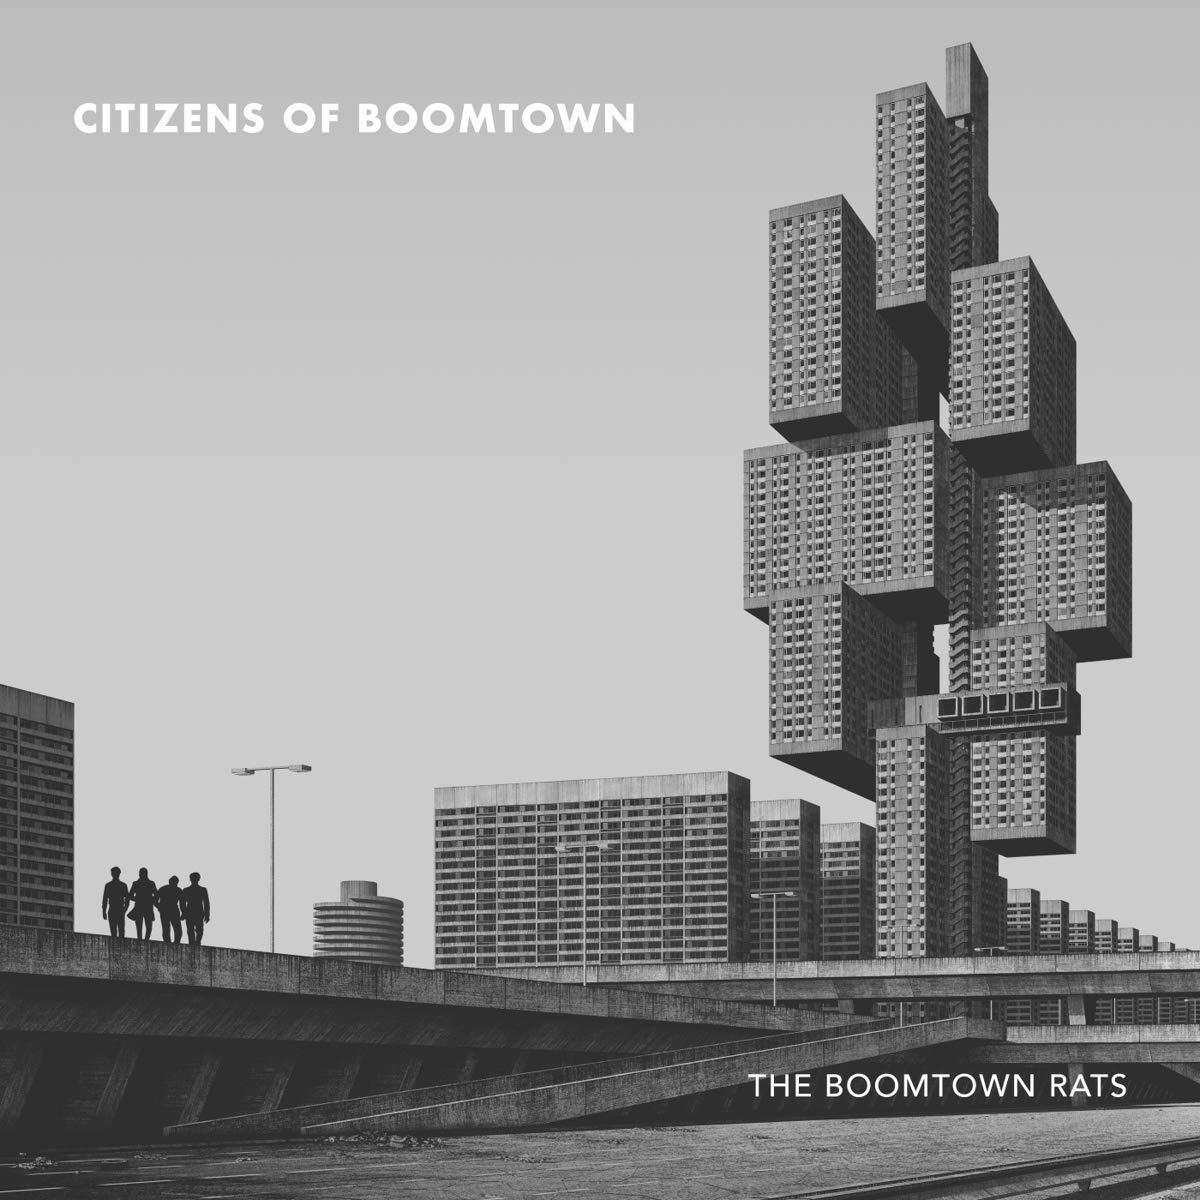 The Boomtown Rats - Citizens Of Boomtown [Gold LP]